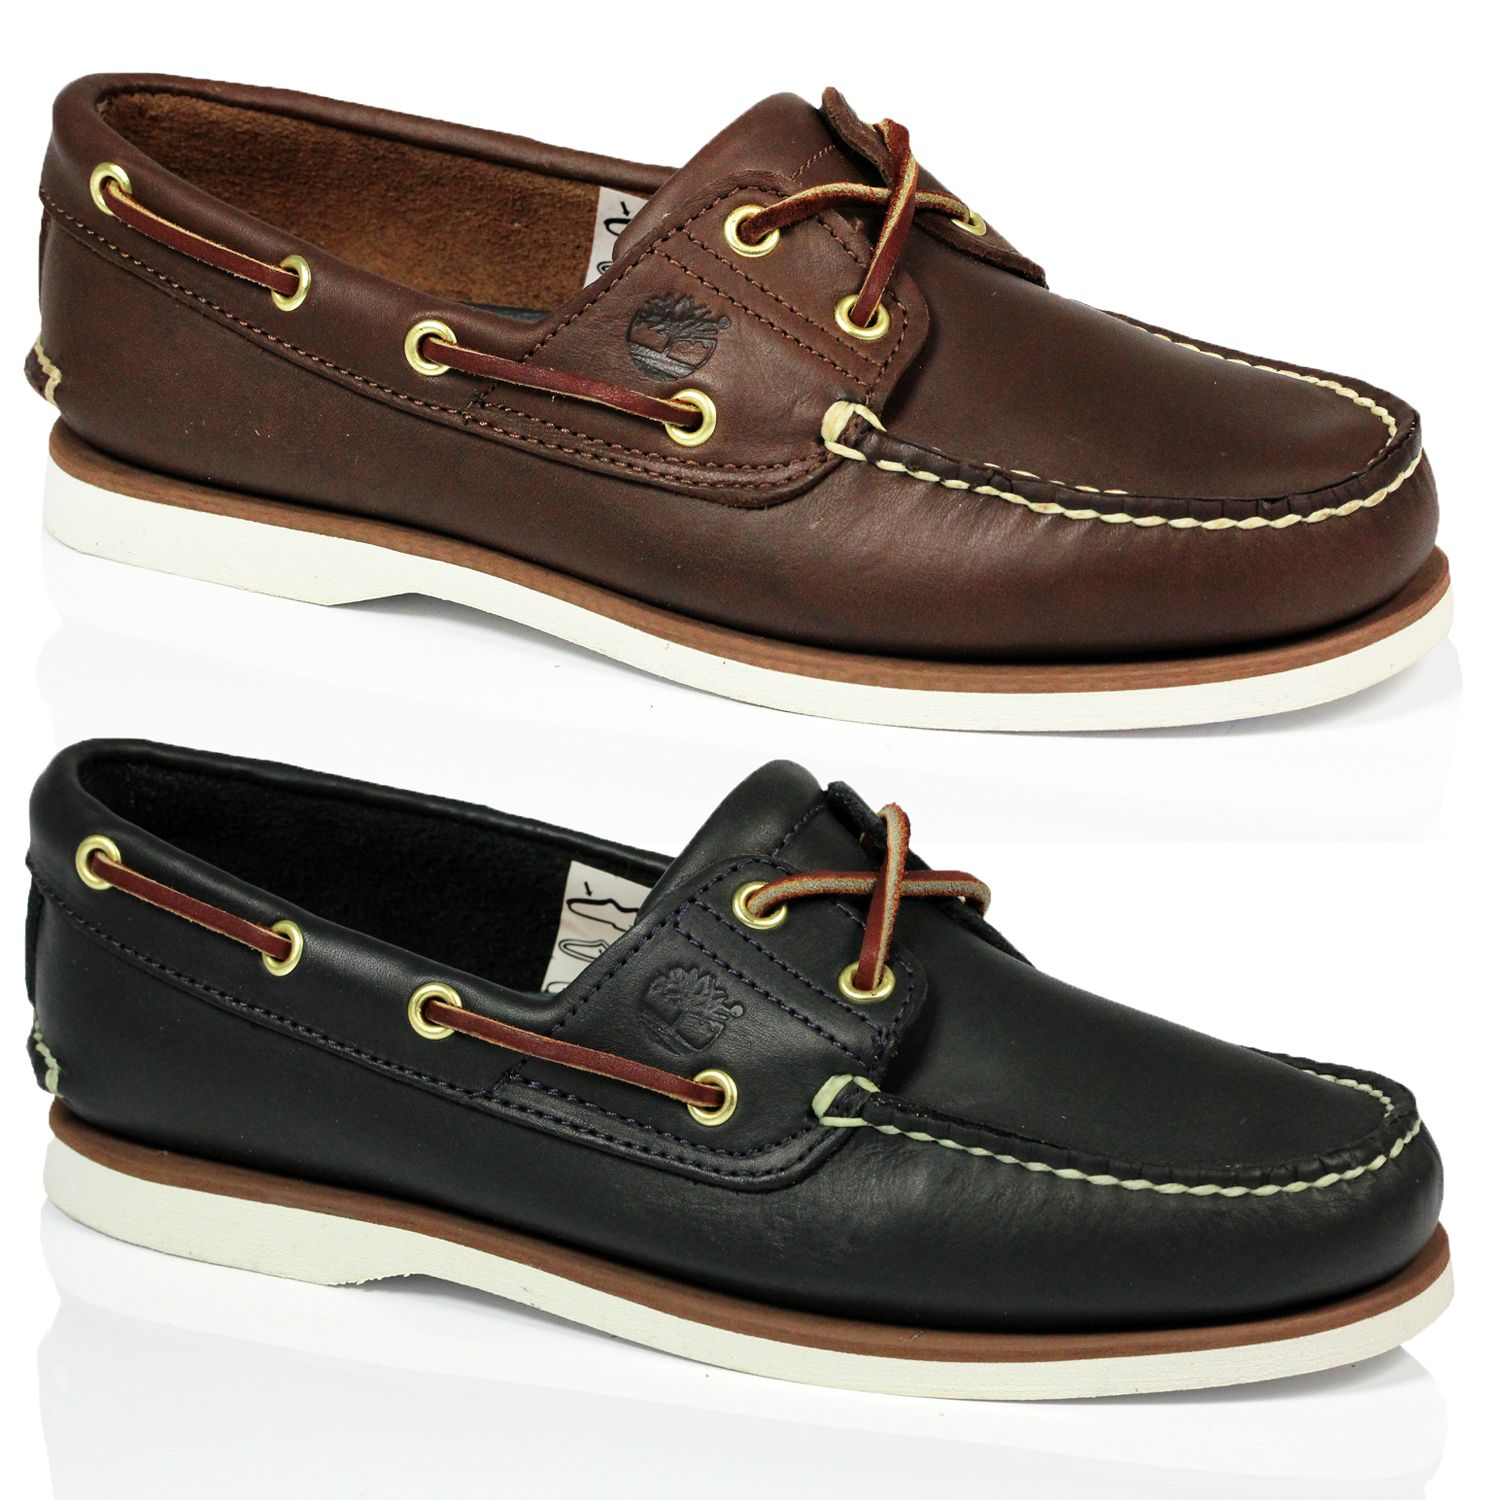 Timberland Classic boat shoes in leather